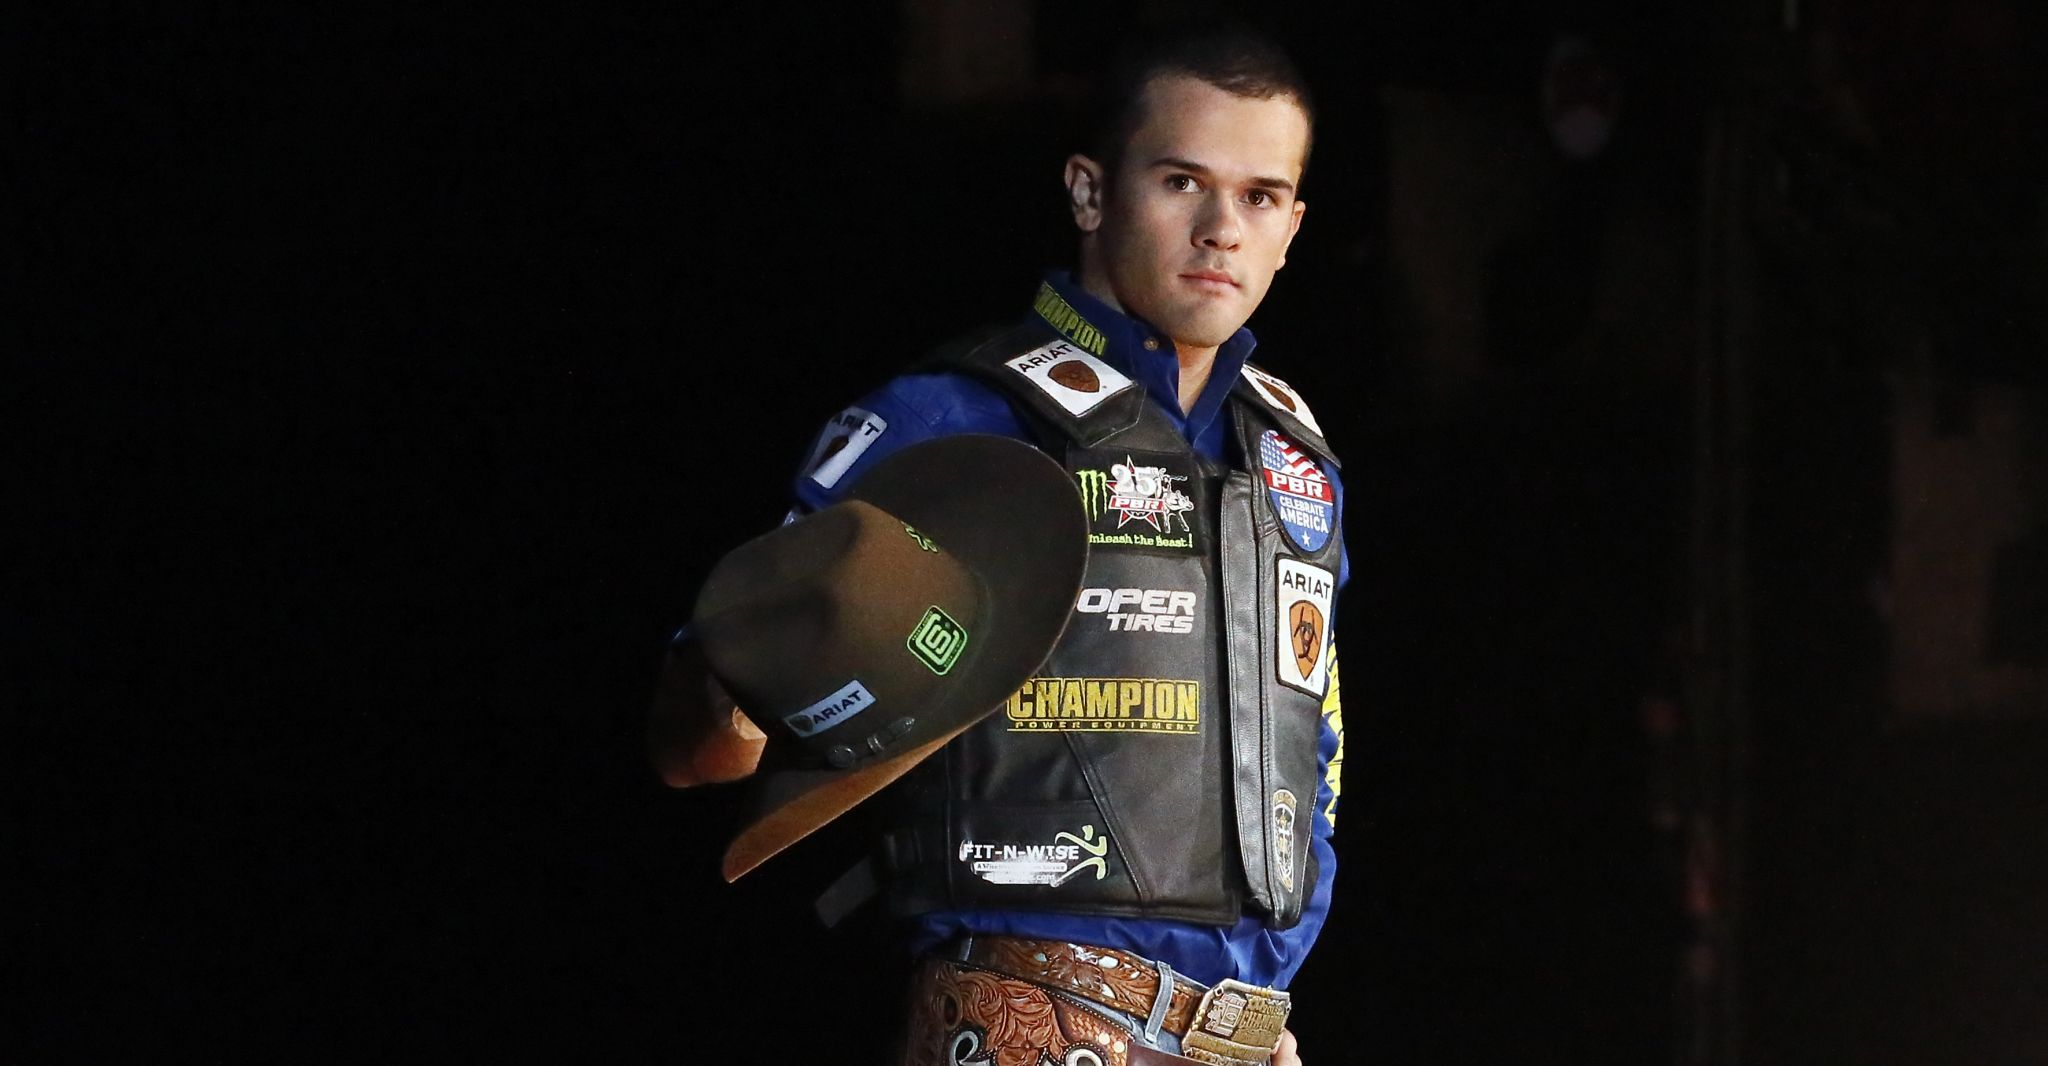 Kaique Pacheco Wins 2018 Pbr World Championship